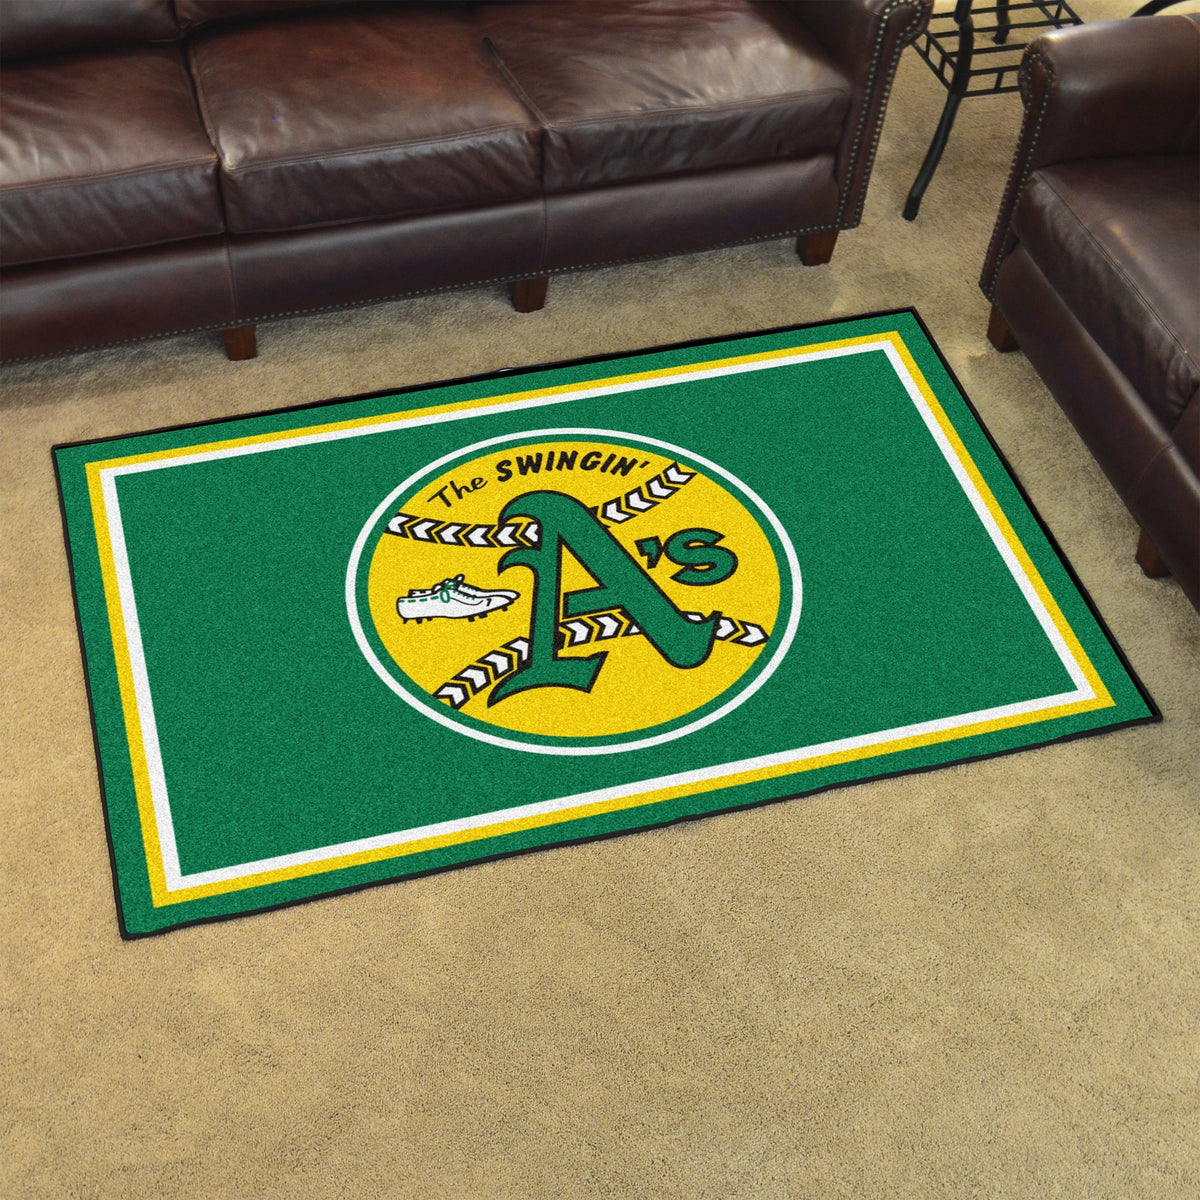 MLB Retro - 4' x 6' Rug MLB Retro Mats, Plush Rugs, 4x6 Rug, MLB, Home Fan Mats Oakland Athletics